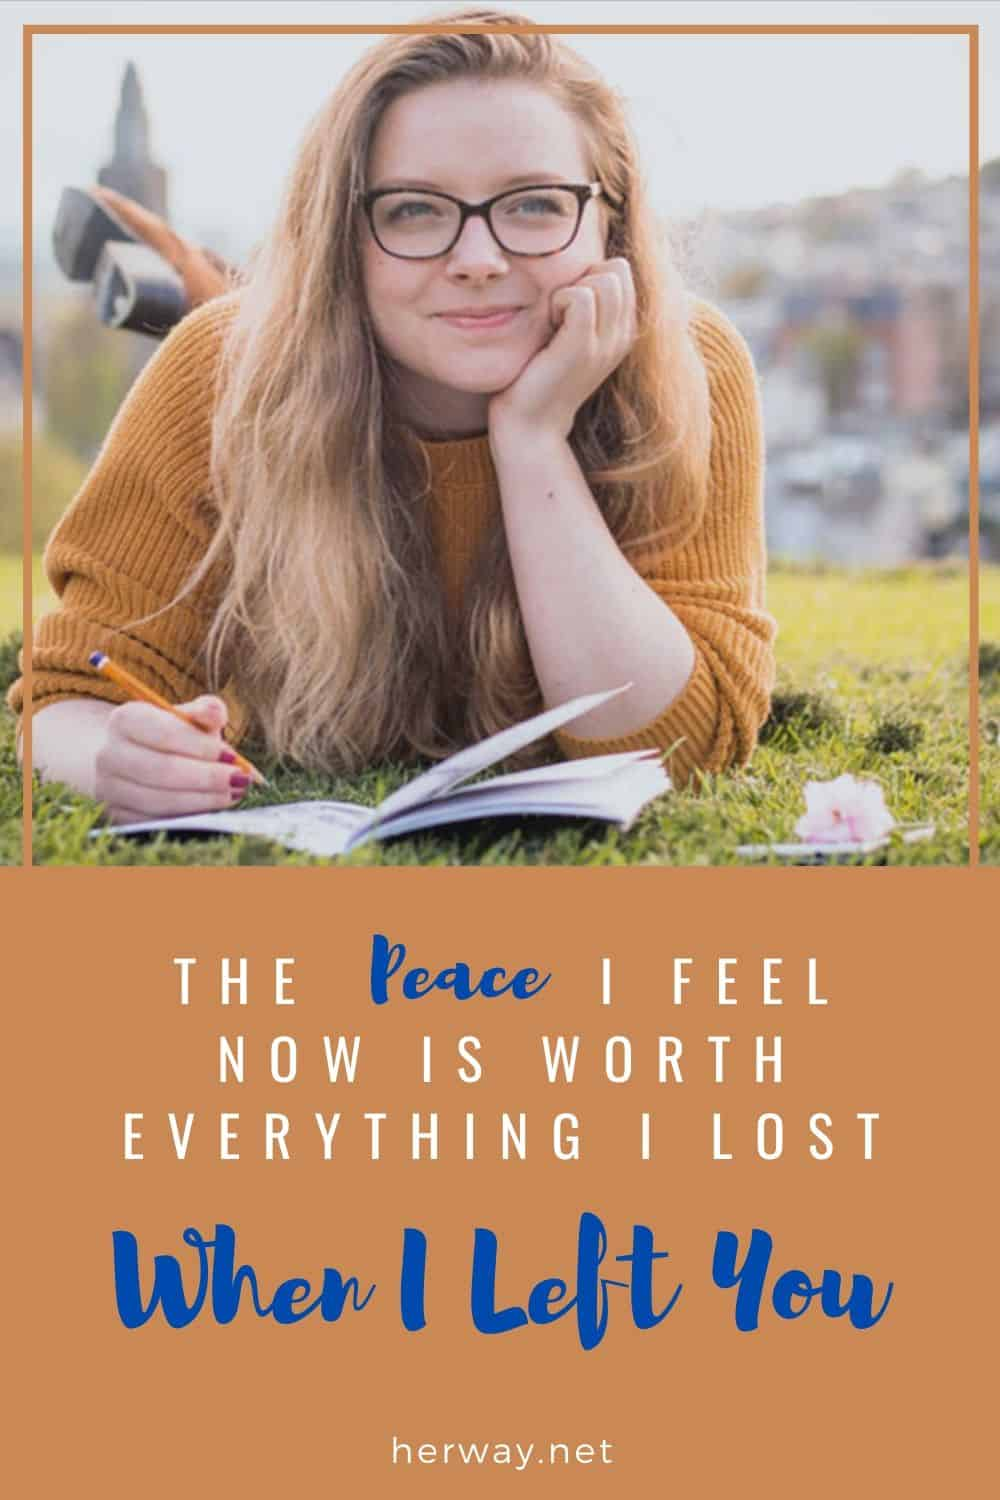 The Peace I Feel Now Is Worth Everything I Lost When I Left You